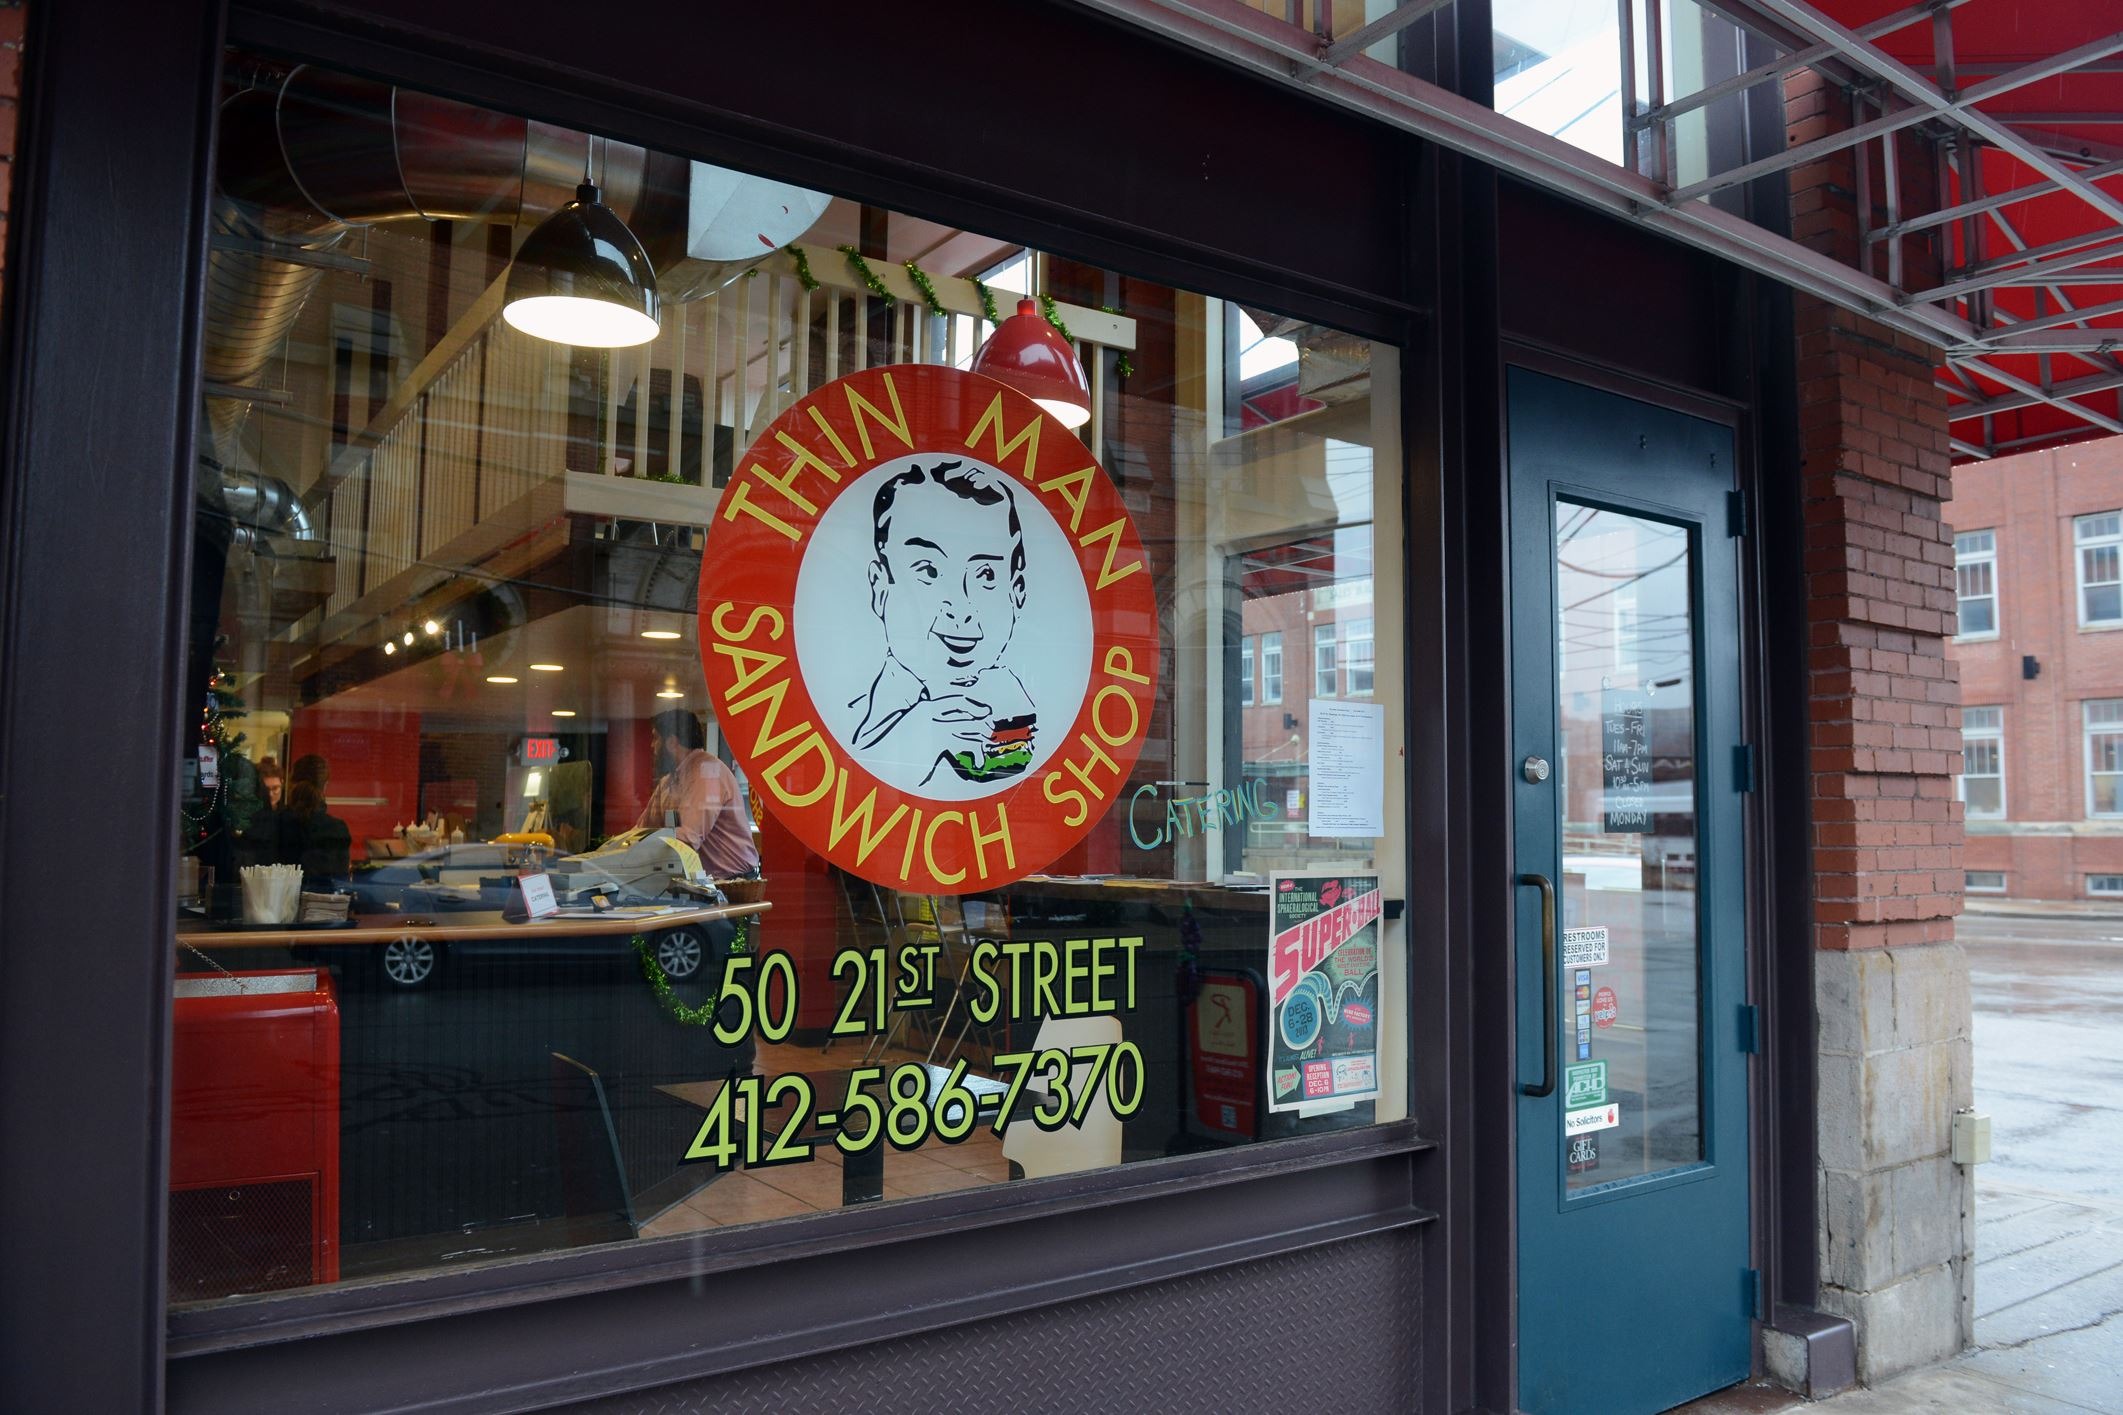 20131205dbwThinMag03-2 Thin Man Sandwich Shop, owned by Dan and Sherri Leiphart, will close on Sept. 17.